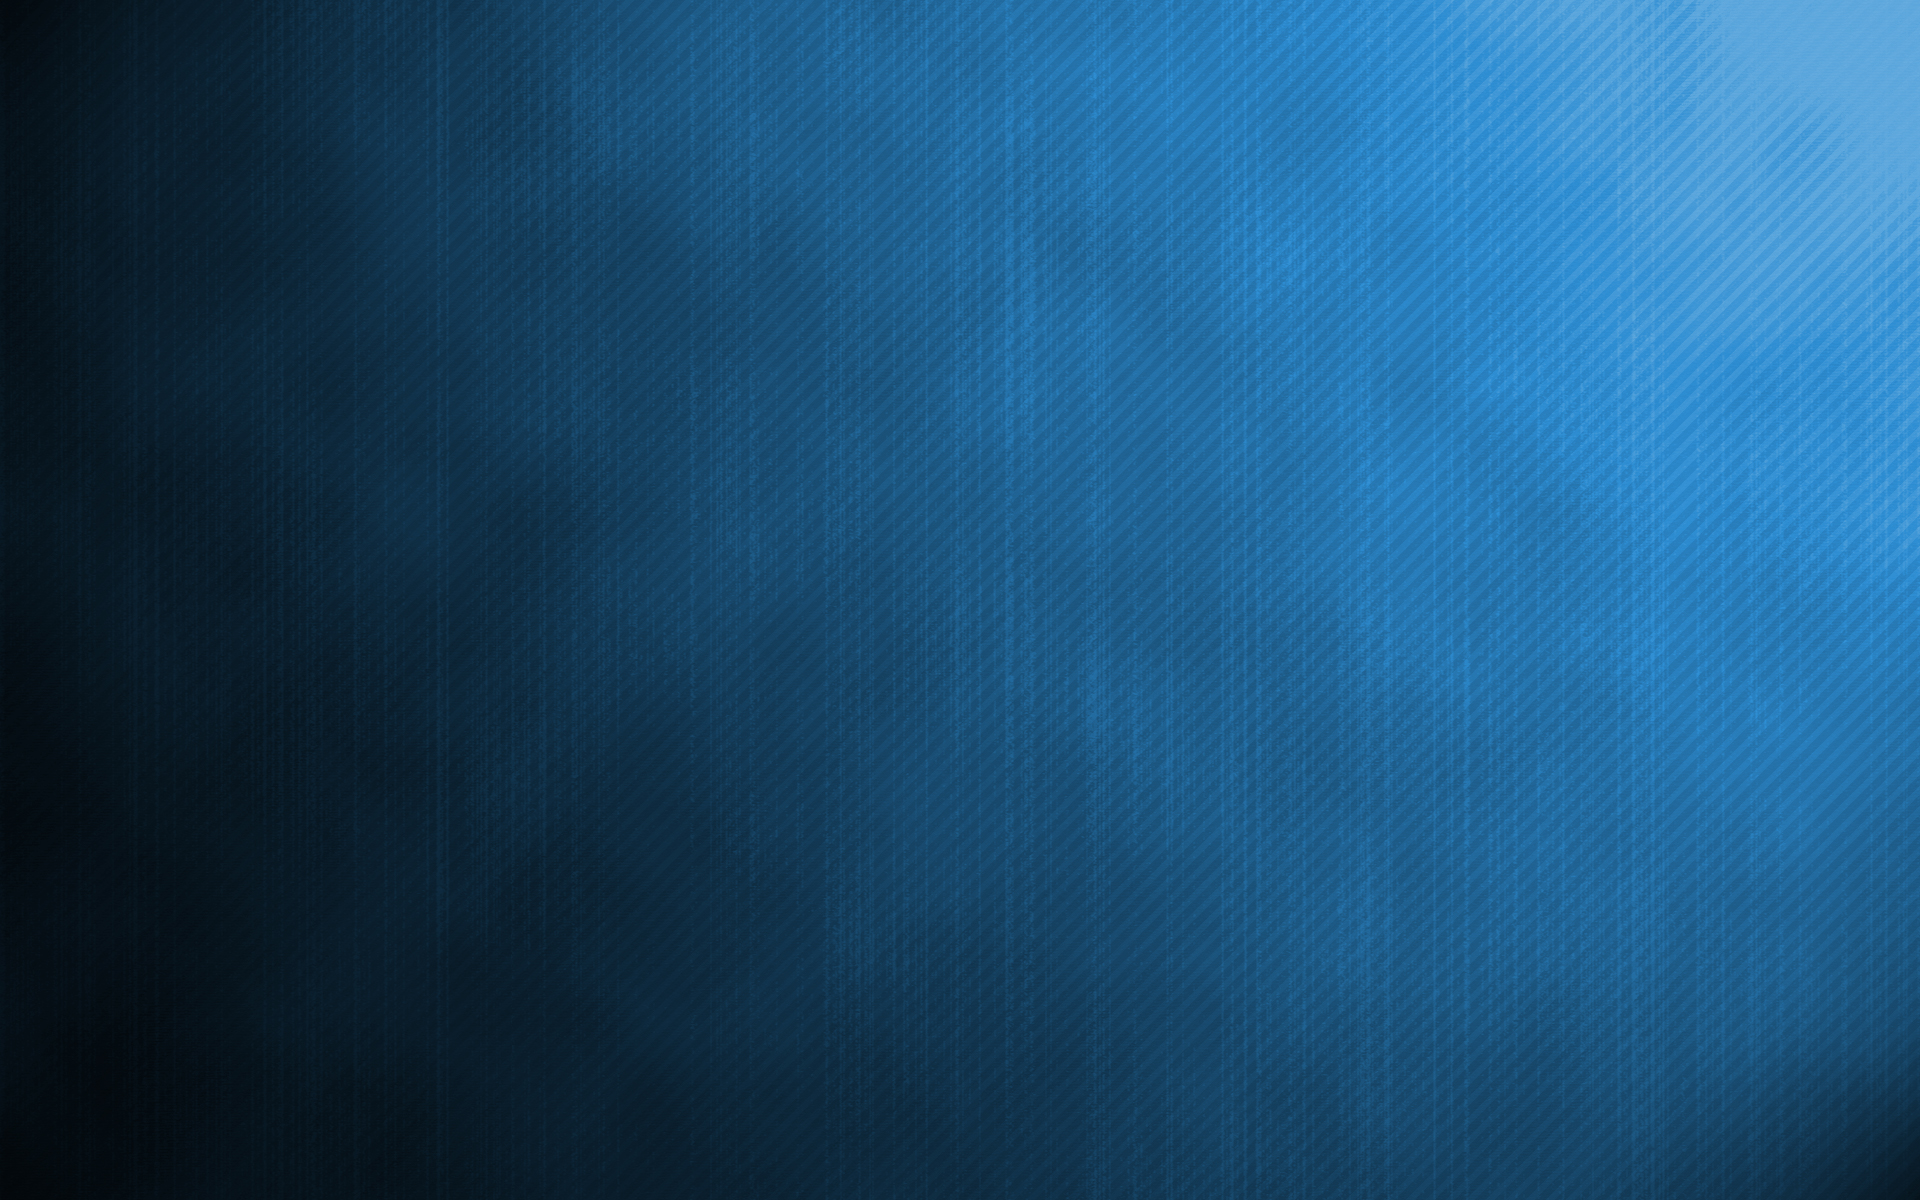 Black And Blue Colors 1 Free Hd Wallpaper